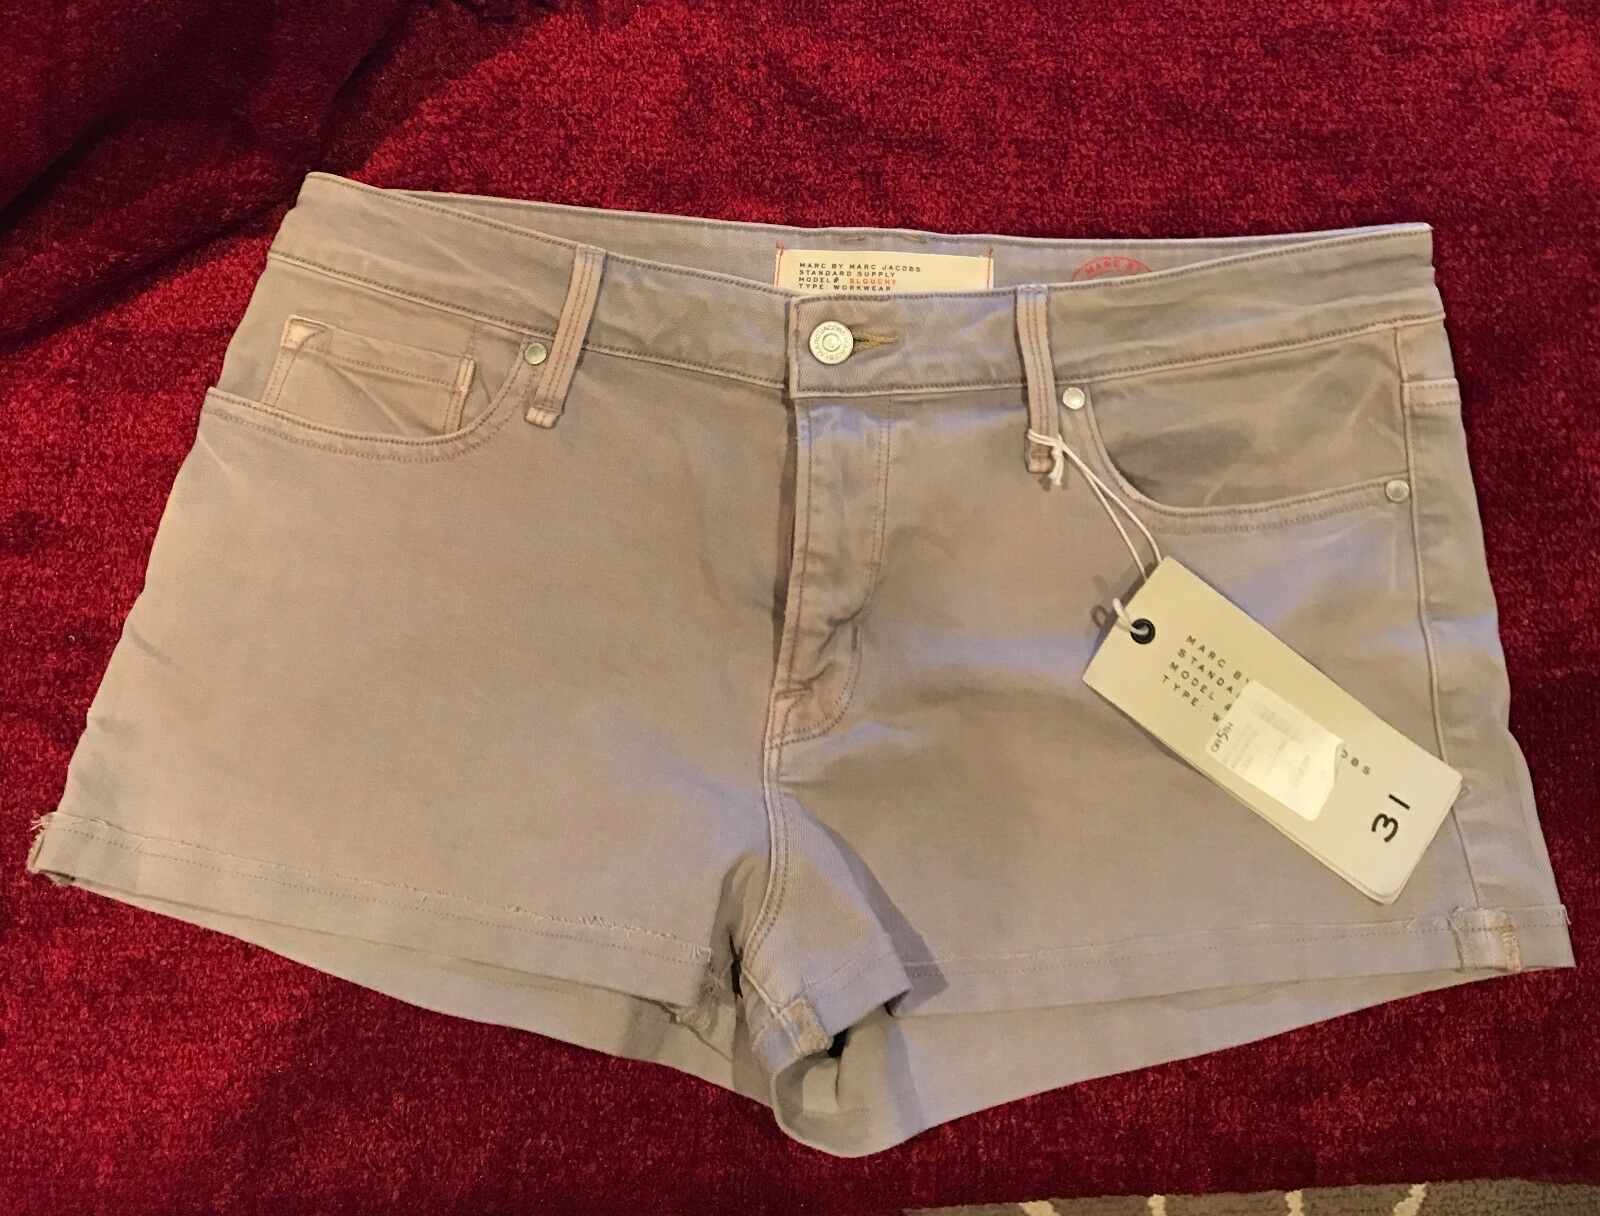 Marc by Marc Jacobs Pale Lavender Shorts - Size 31